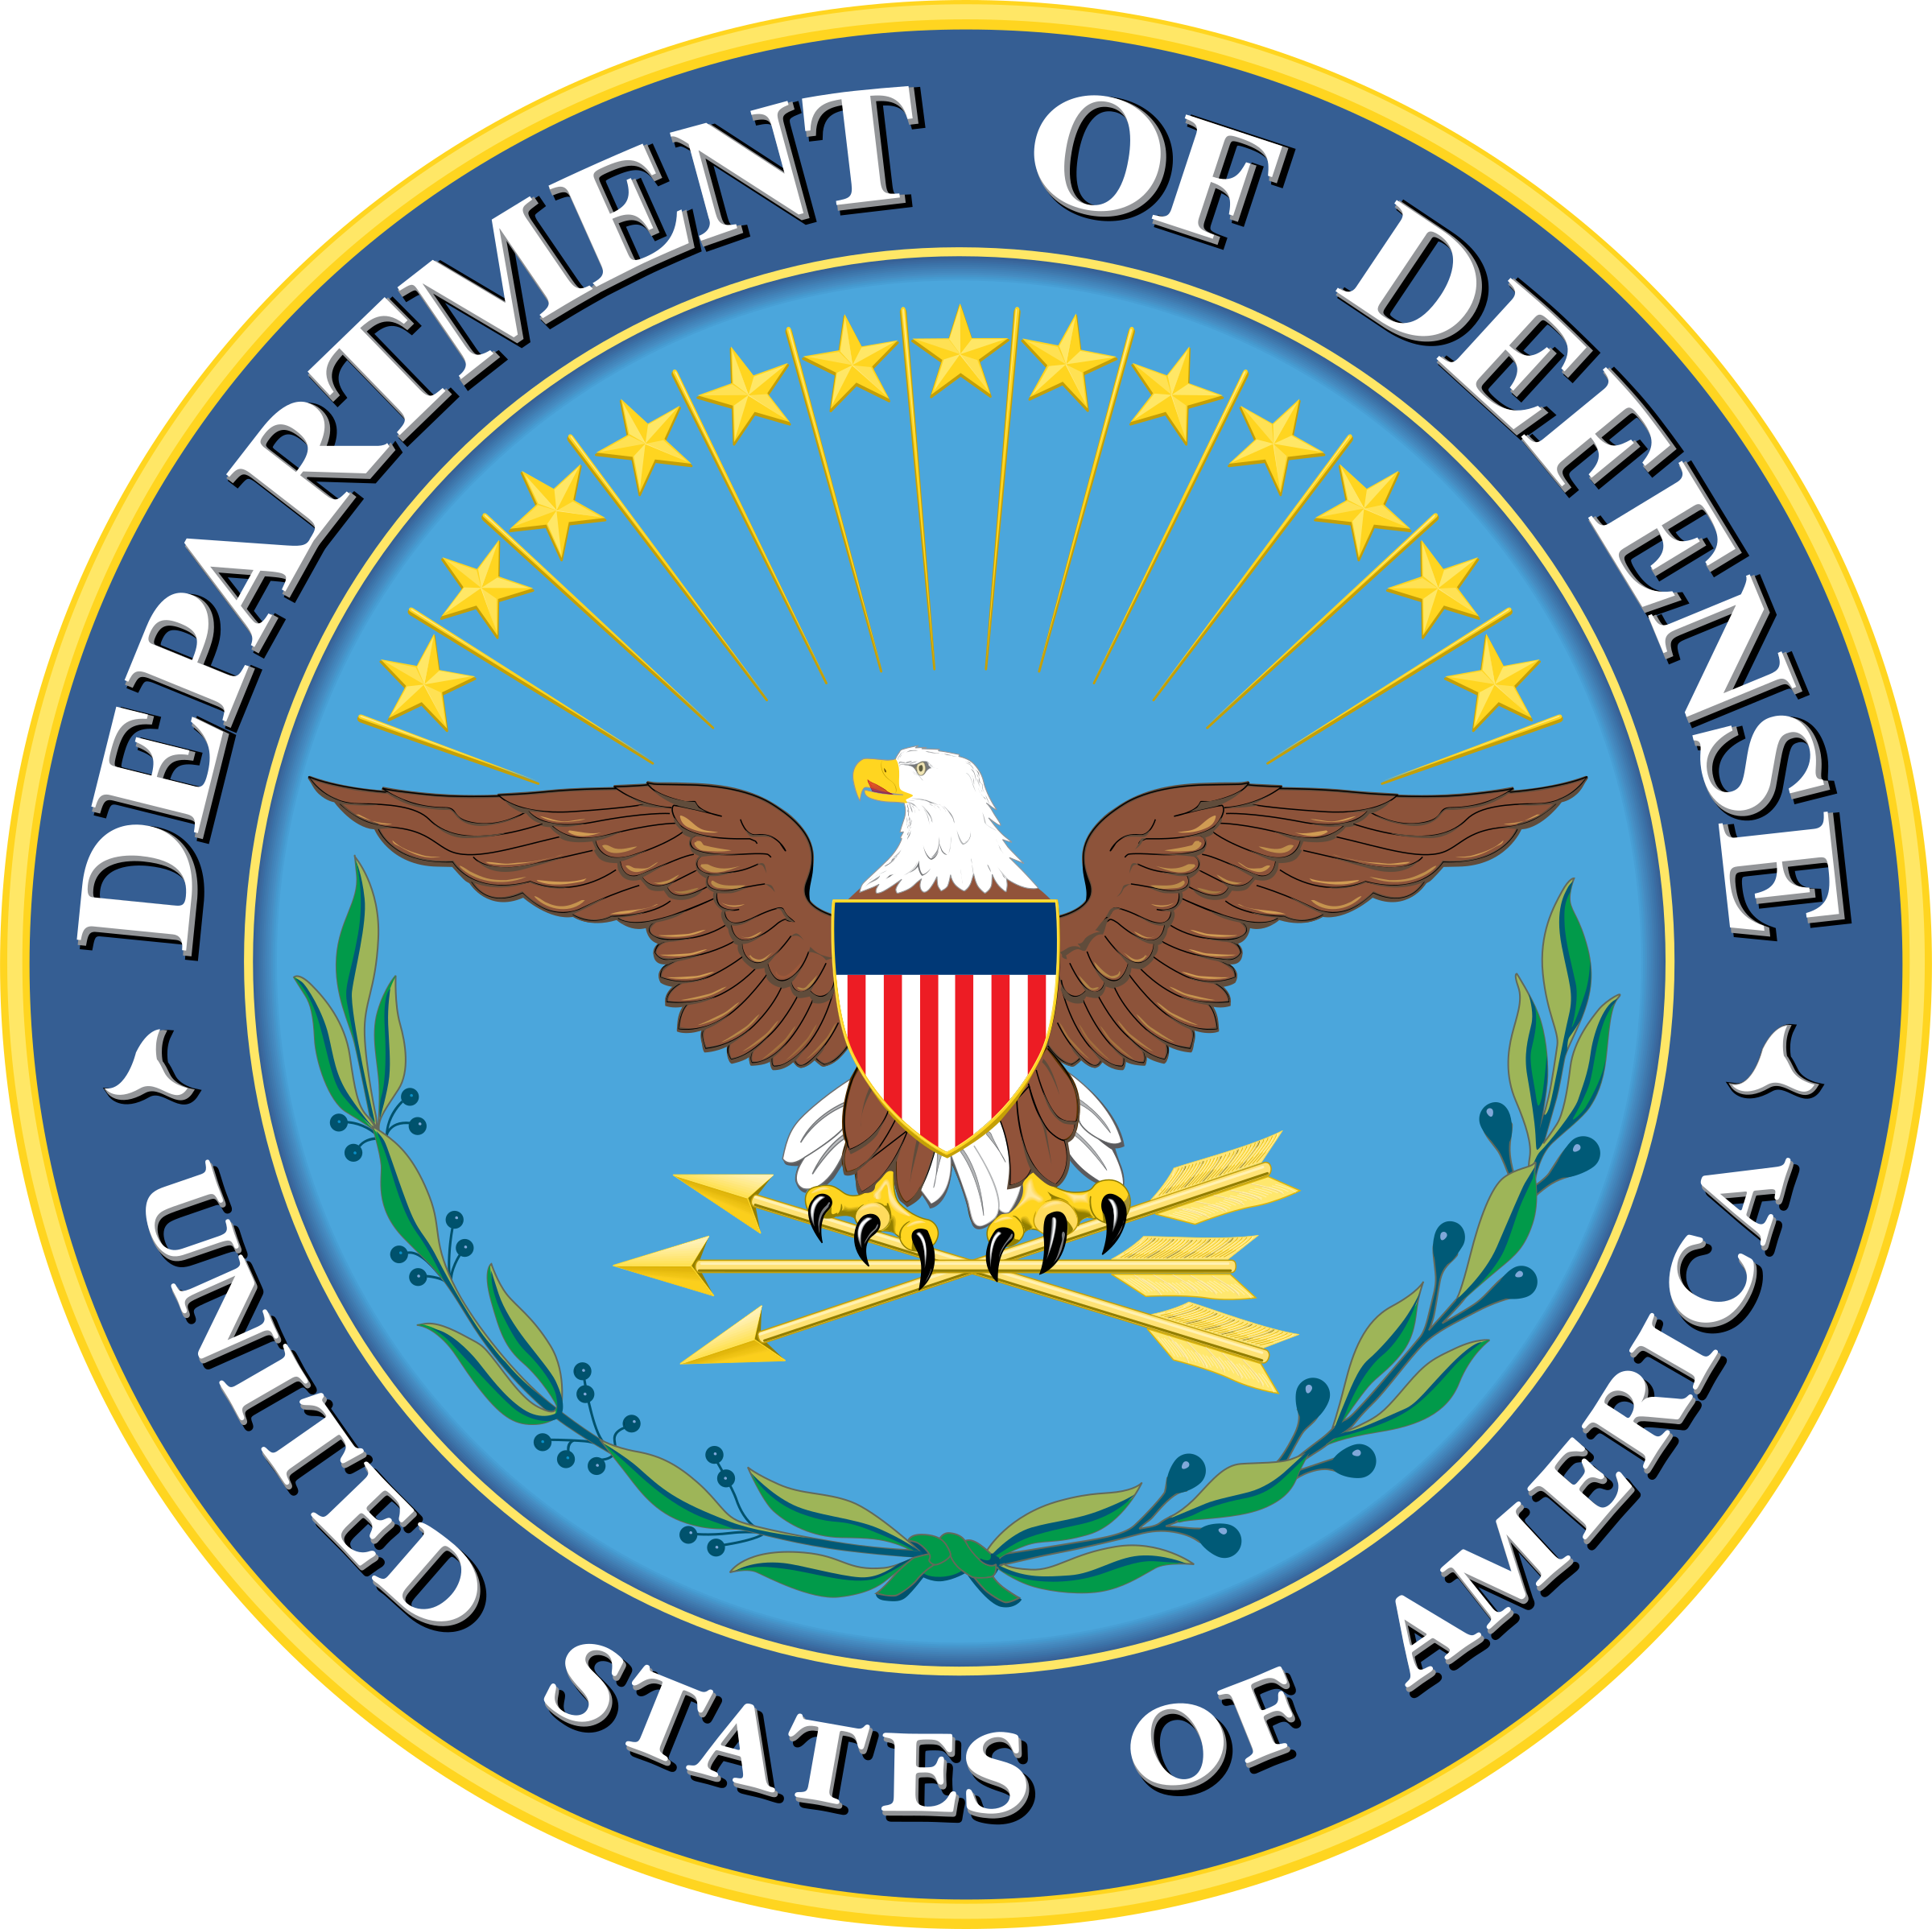 //secureservercdn.net/198.71.233.129/omh.611.myftpupload.com/wp-content/uploads/2020/01/us-department-of-defense-logo-png-transparent.png